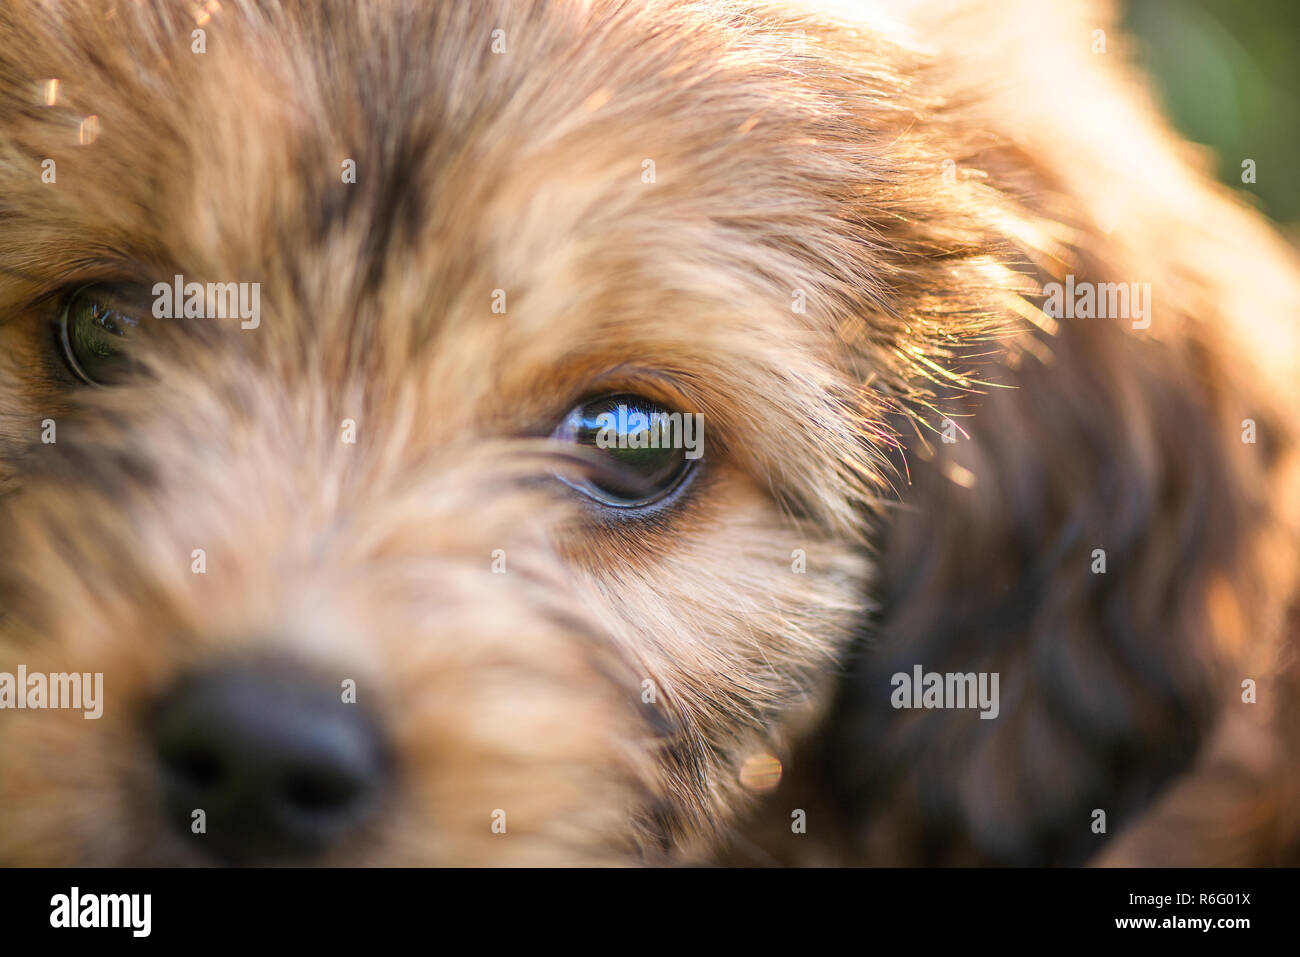 Macro shot of big black eye. Little, small, cute, fluffy, brown puppy. Concept of abandoned domestic animals and pets. Curious, obedient dog. Concept - Stock Image